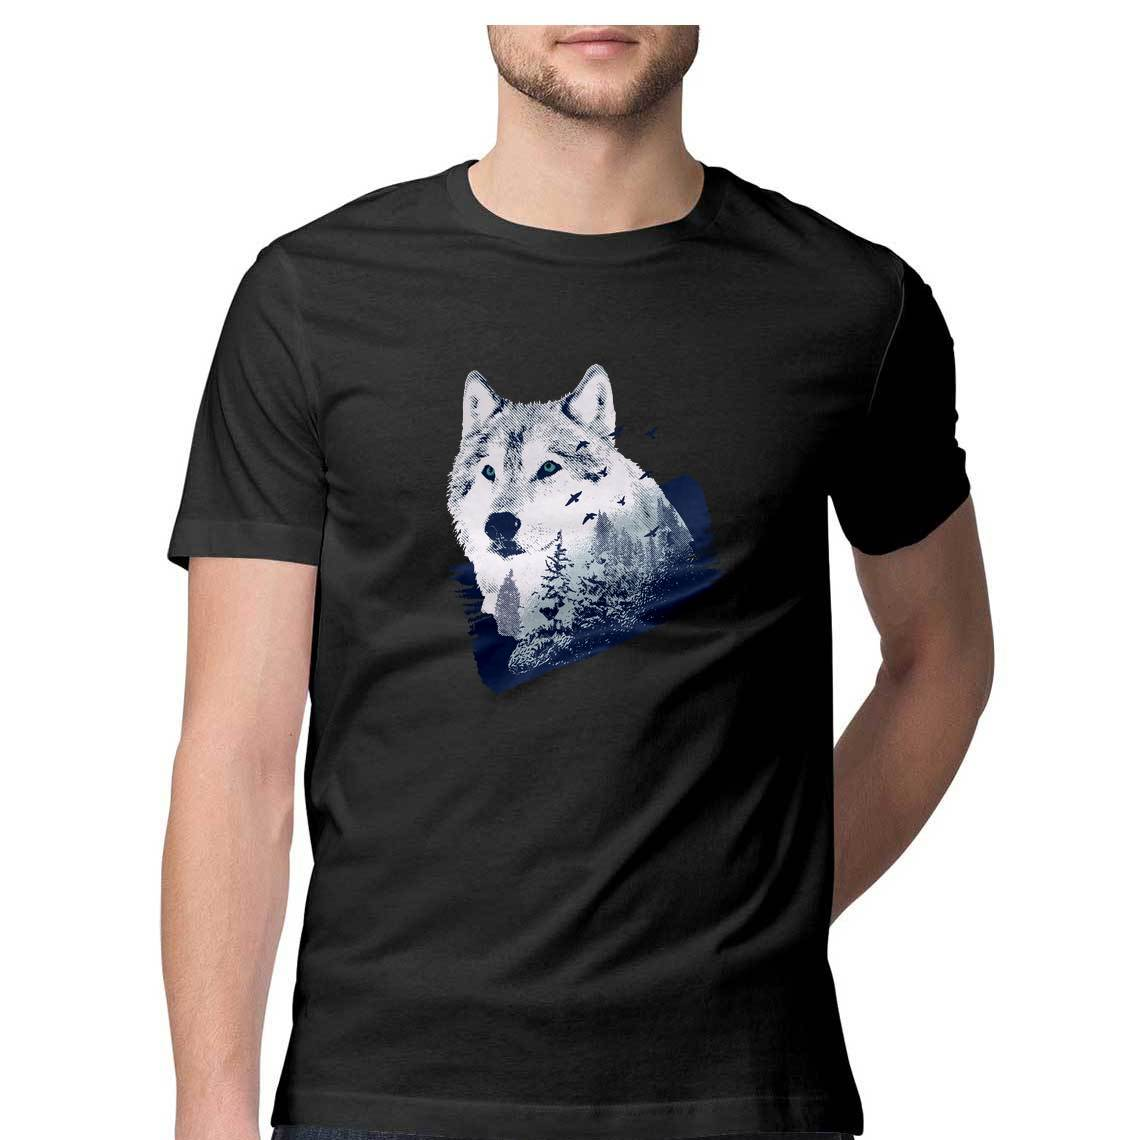 Baromin Men's printed T-shirt - Wolf